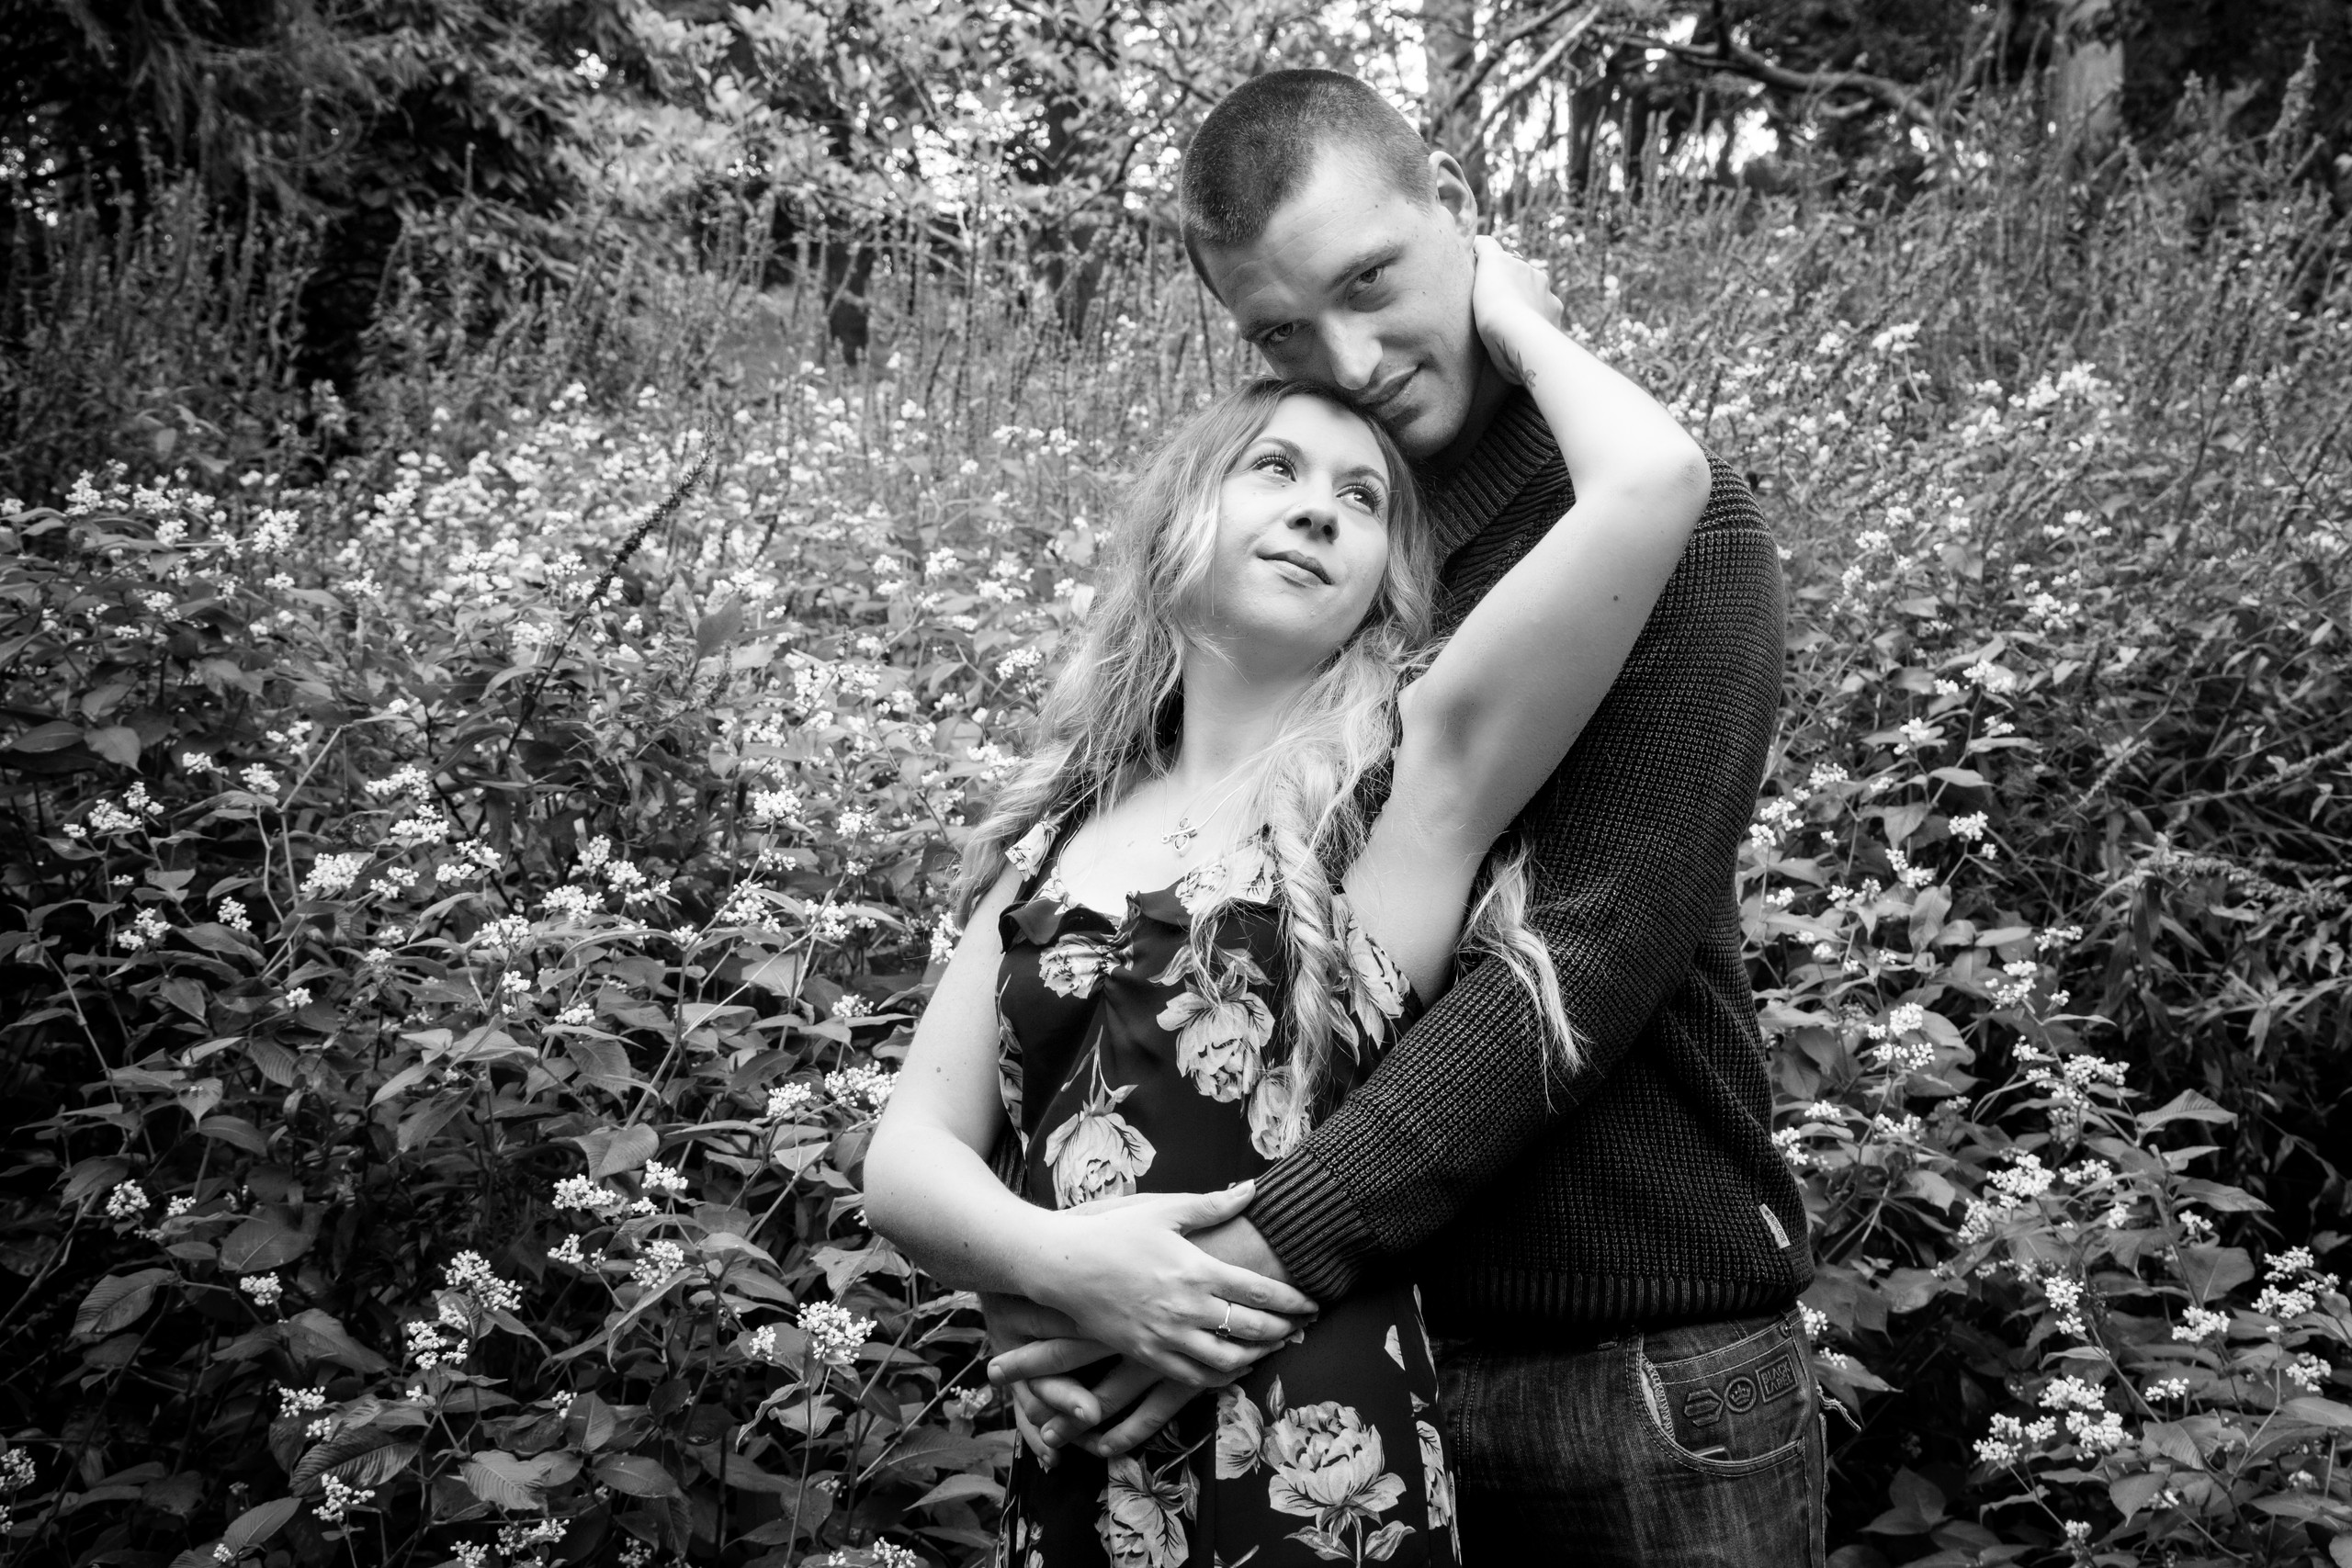 Engagement Photography at Clyne Gardens, Swansea